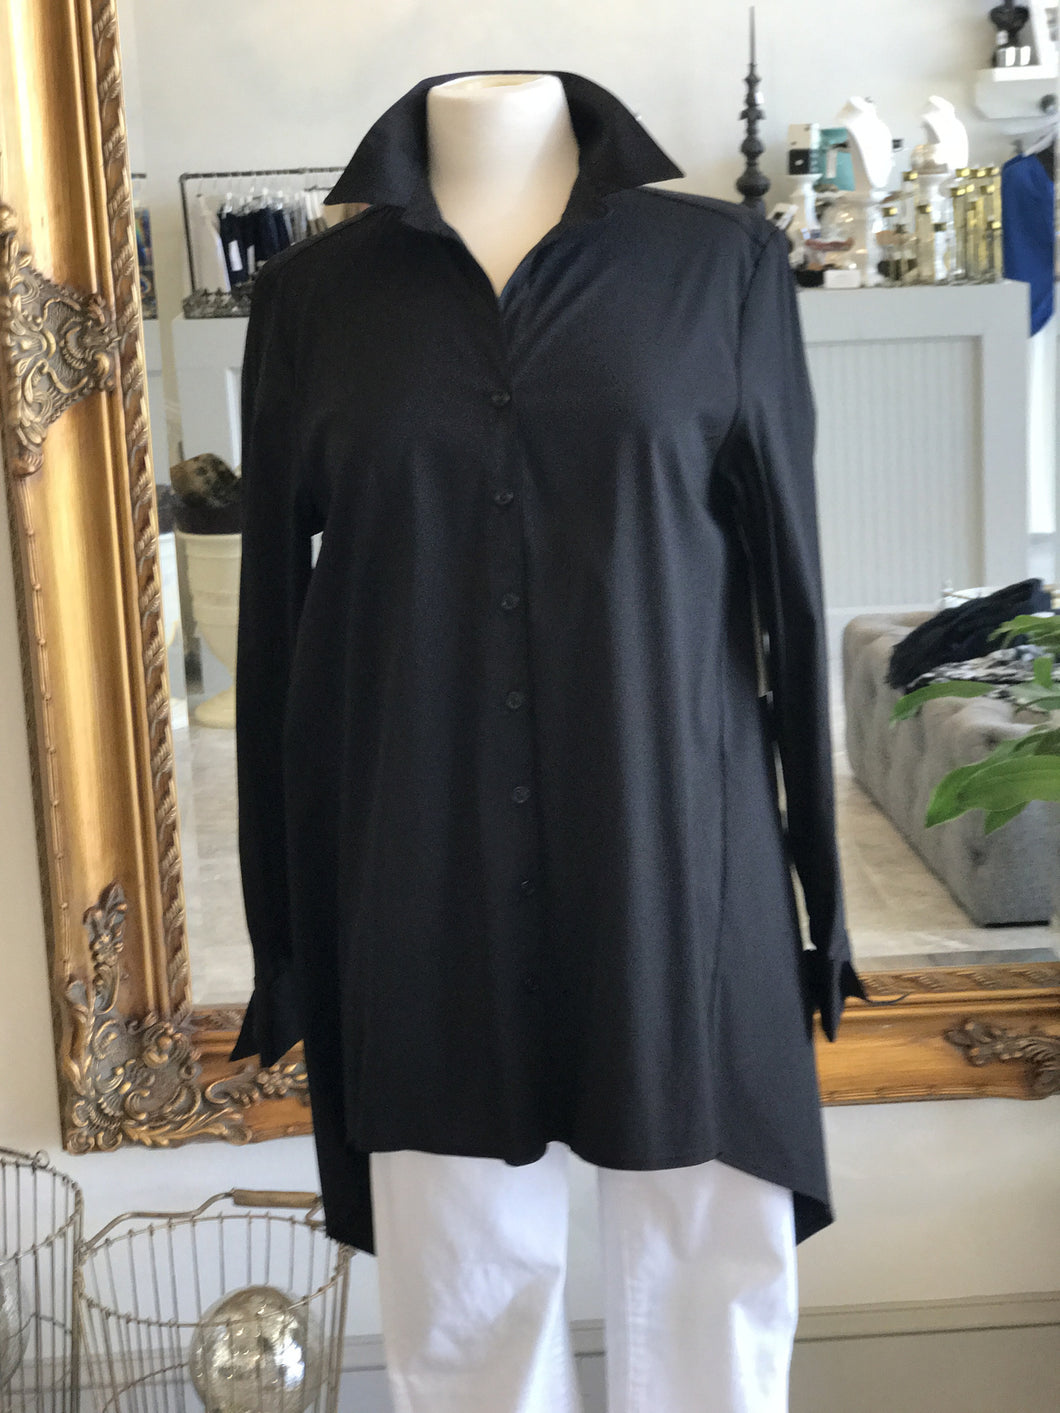 Krazy Larry French Cuff Button Down shirt- black